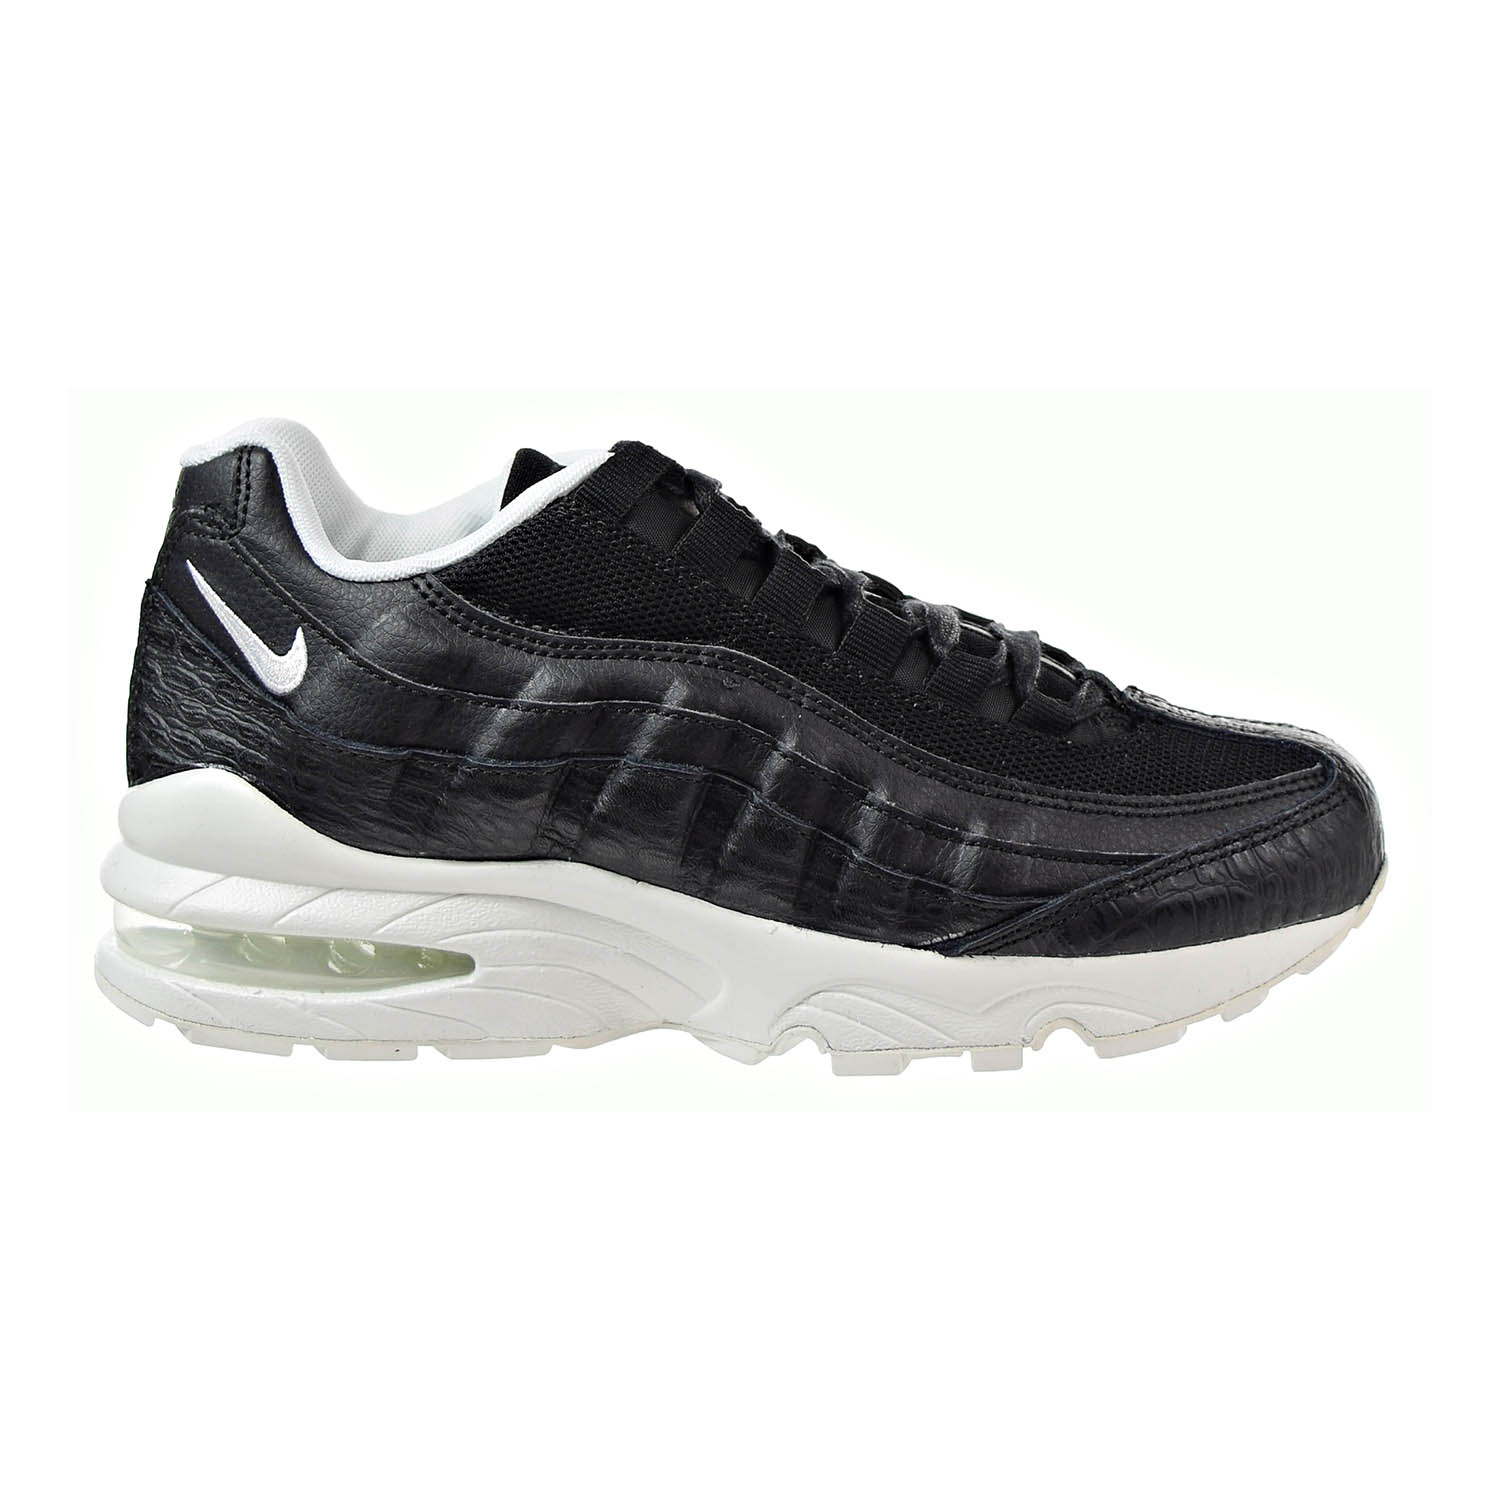 Details about Nike Air Max 95 SE Big Kids\u0027 Shoes Black,Summit White  922173,002